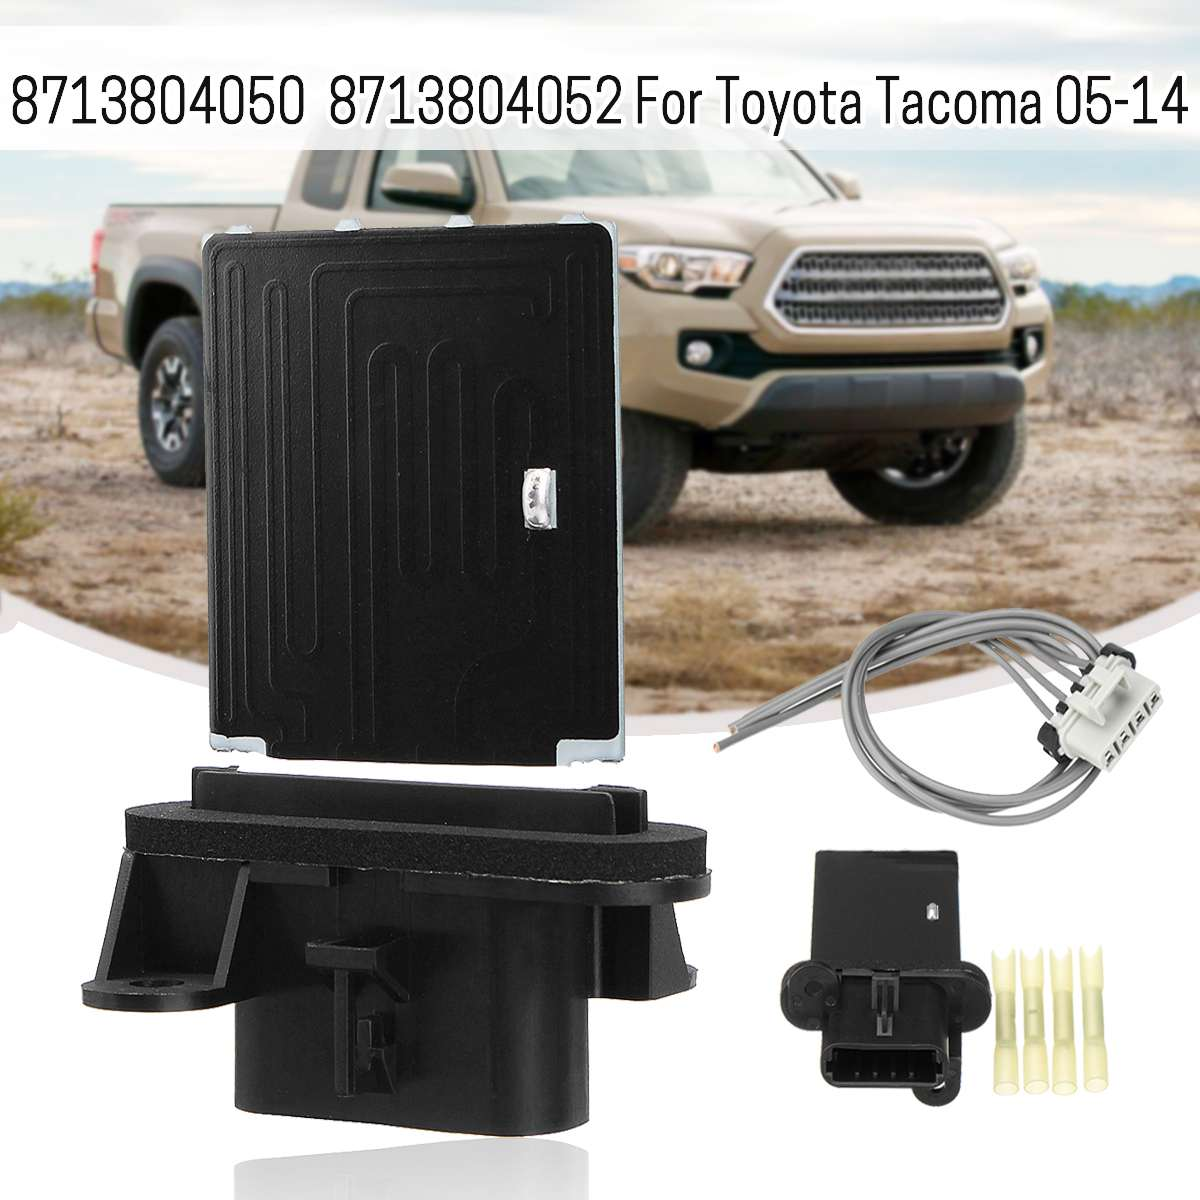 HVAC Blower Motor Resistor Kit With Harness Connector For Toyota Tacoma 2005-2014